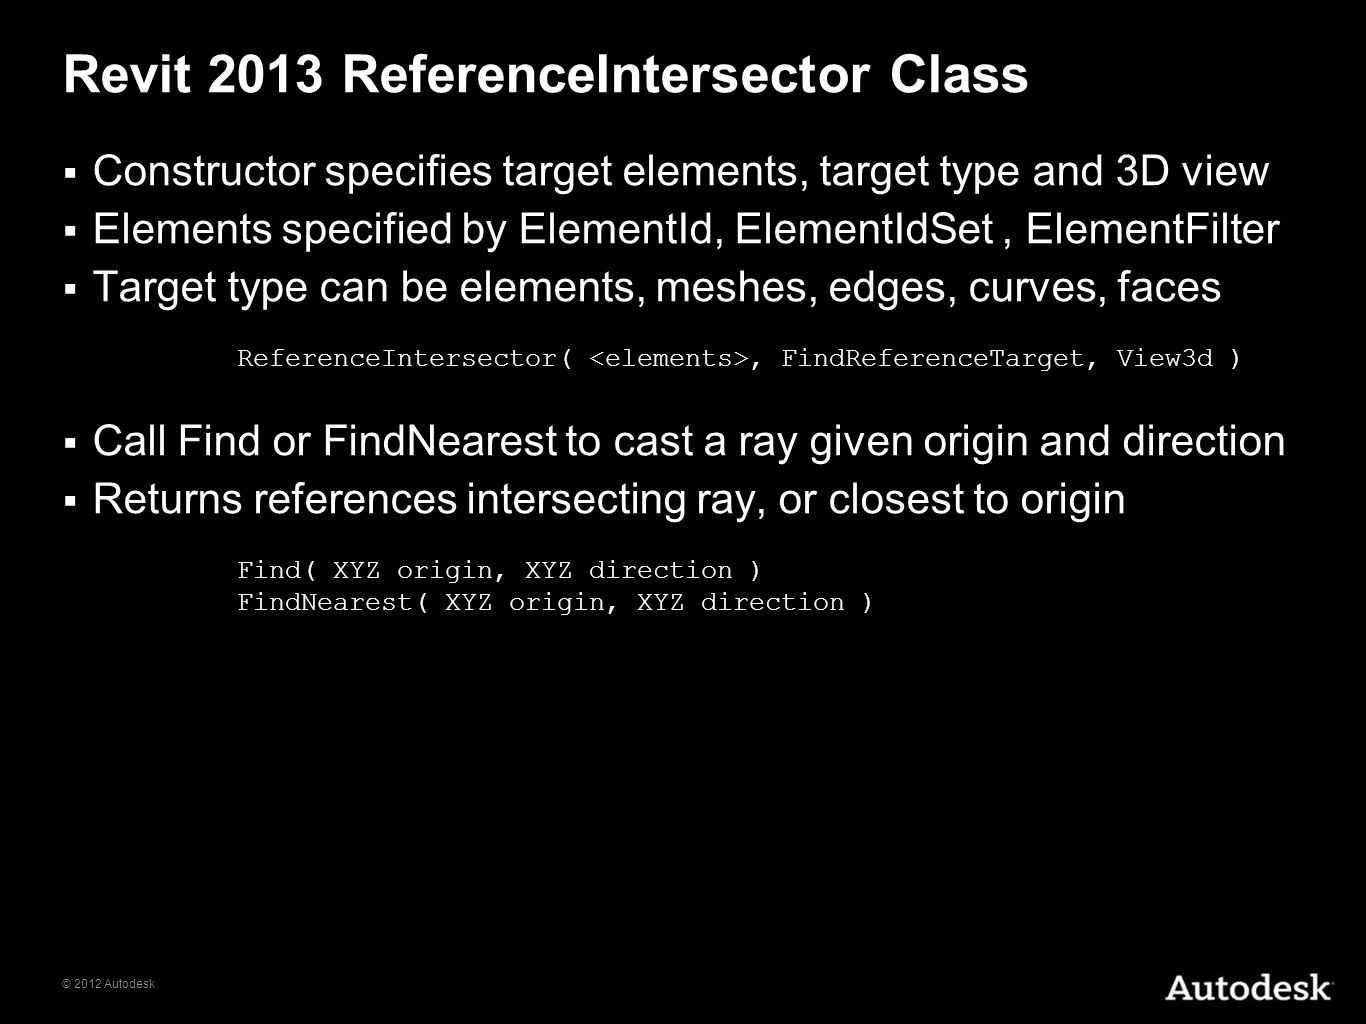 Revit 2013 ReferenceIntersector Class